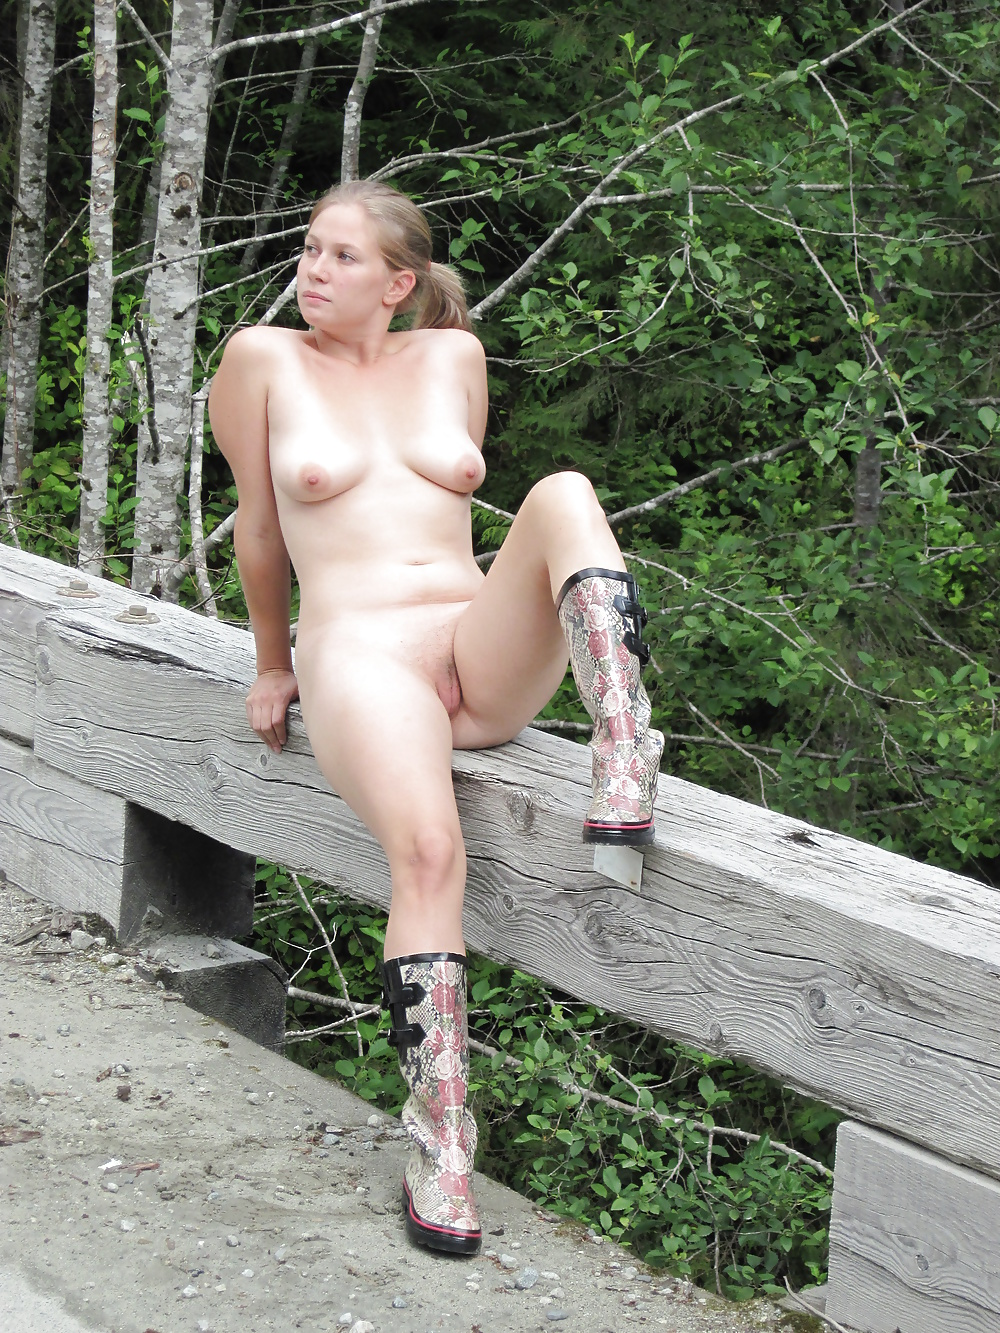 Free amateur, outdoor pictures